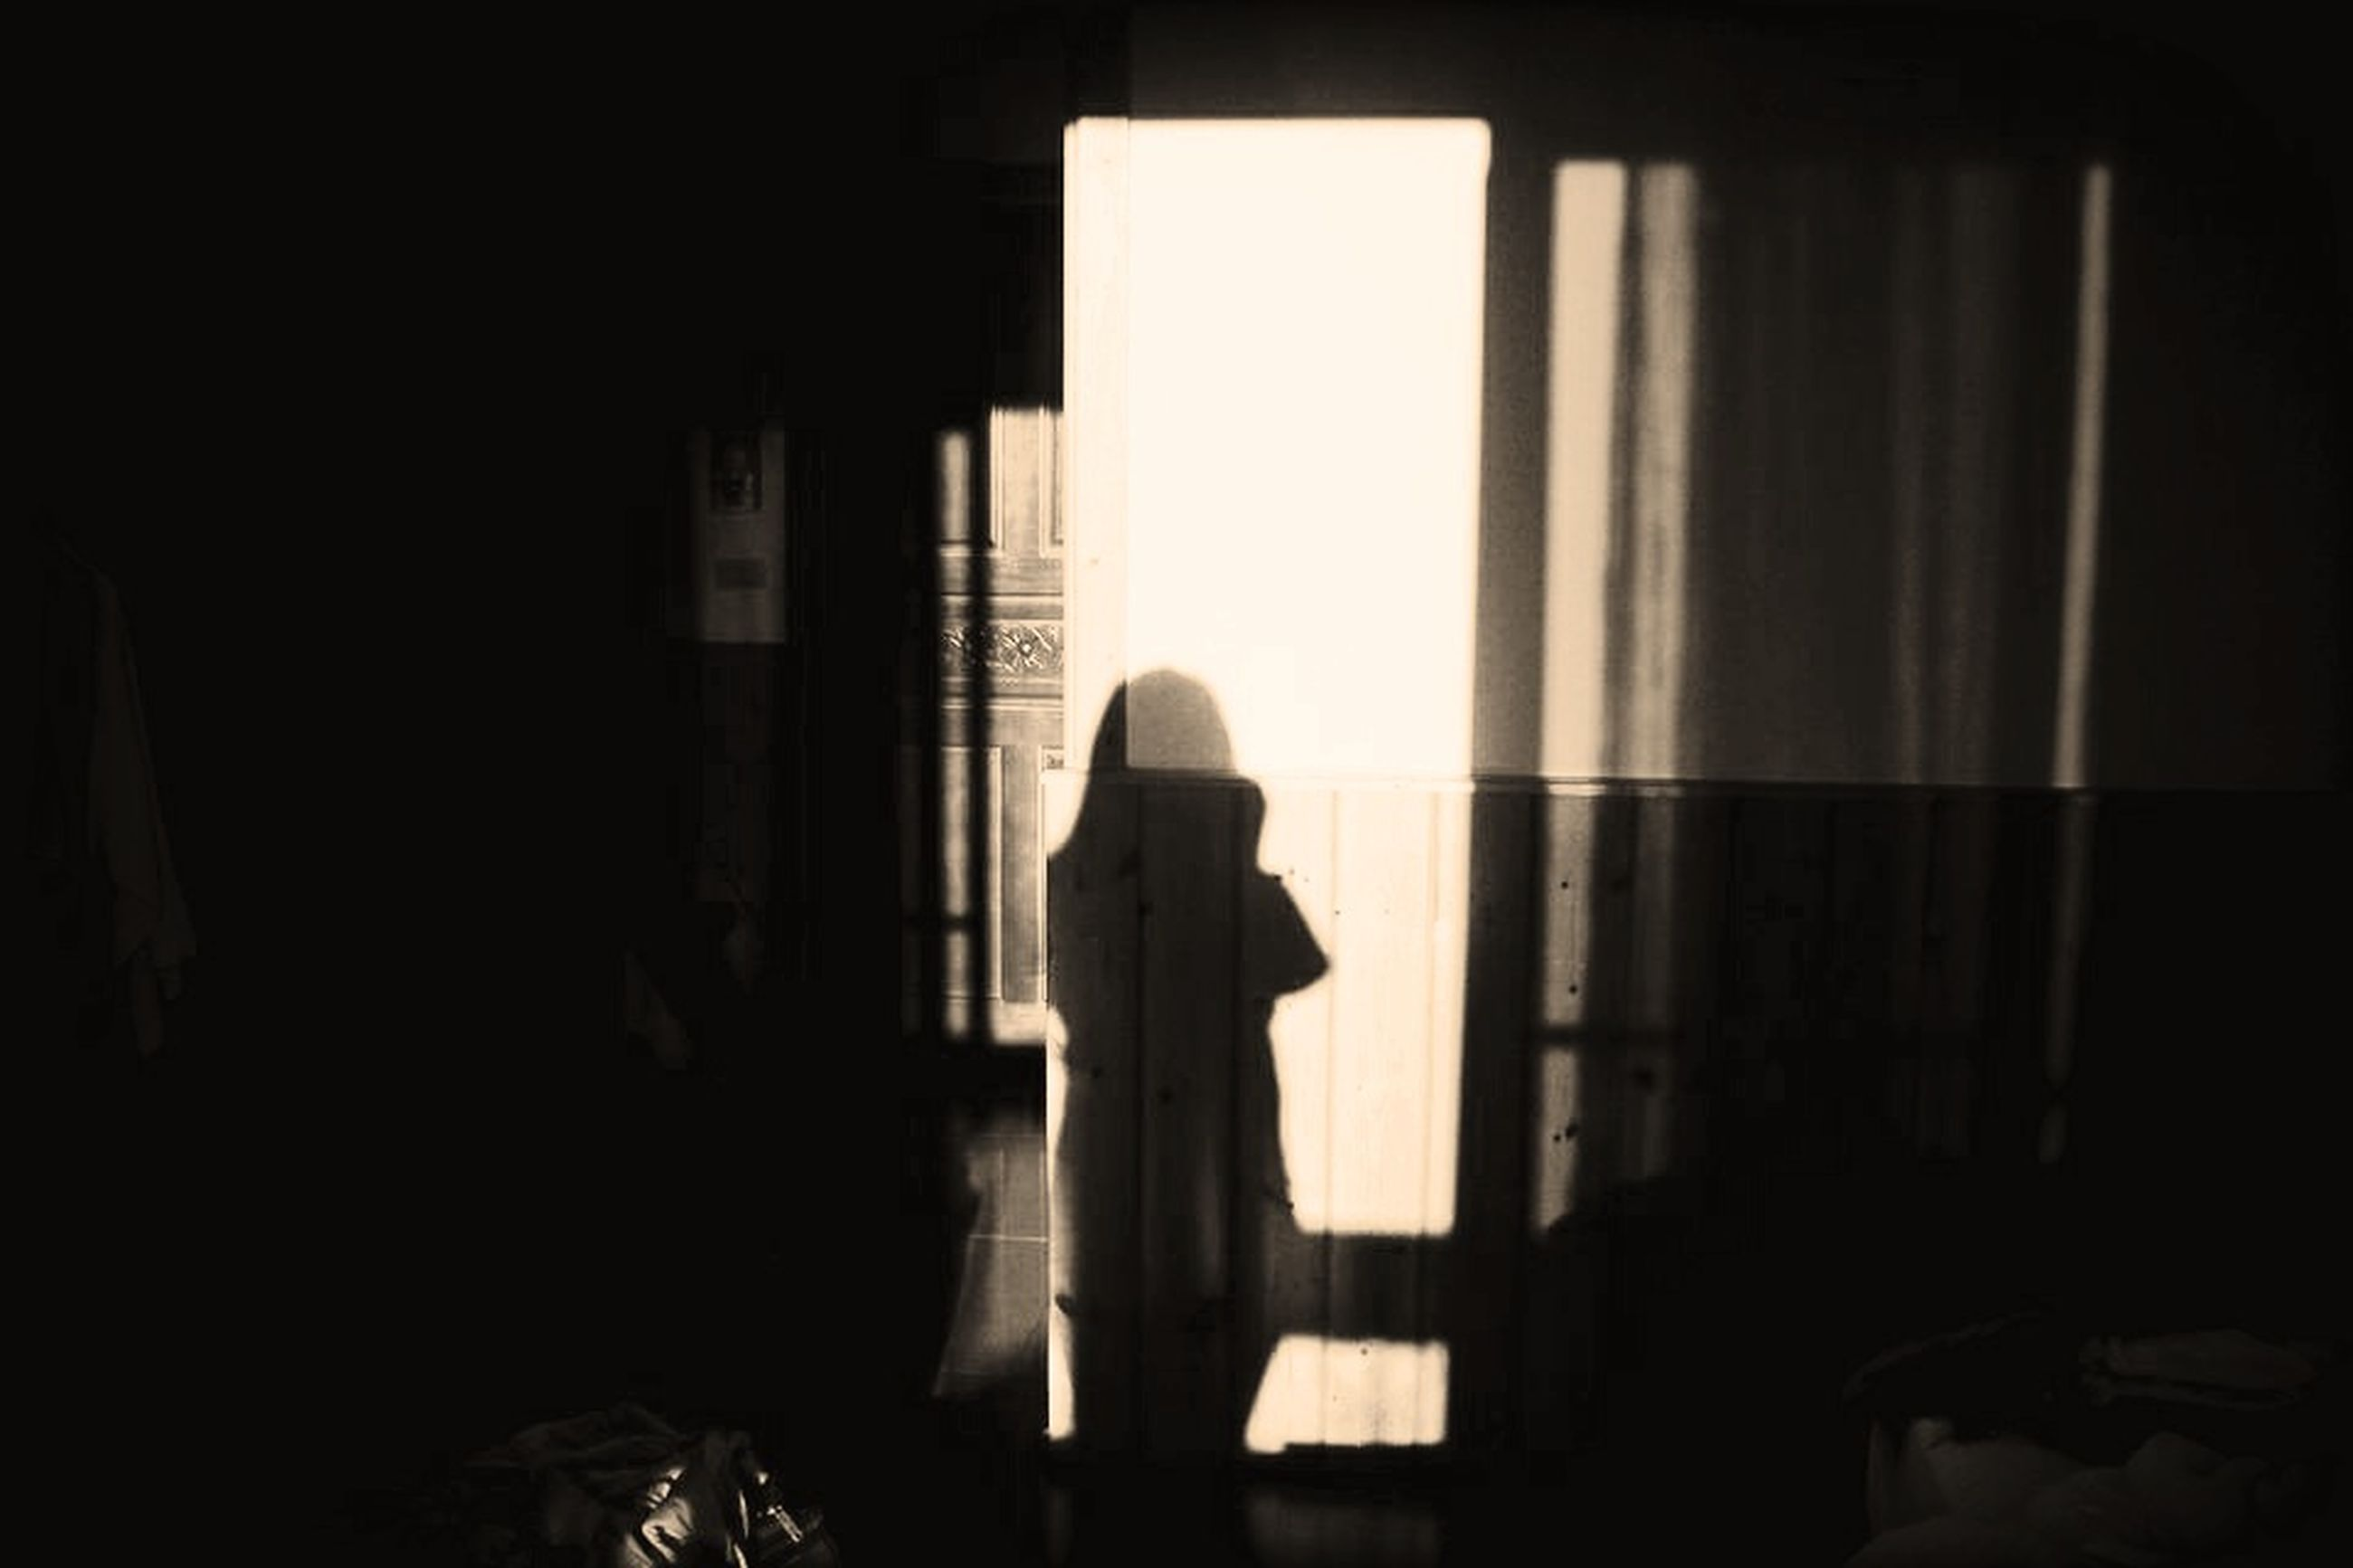 indoors, silhouette, window, standing, lifestyles, rear view, shadow, dark, home interior, person, full length, sunlight, leisure activity, men, curtain, side view, built structure, architecture